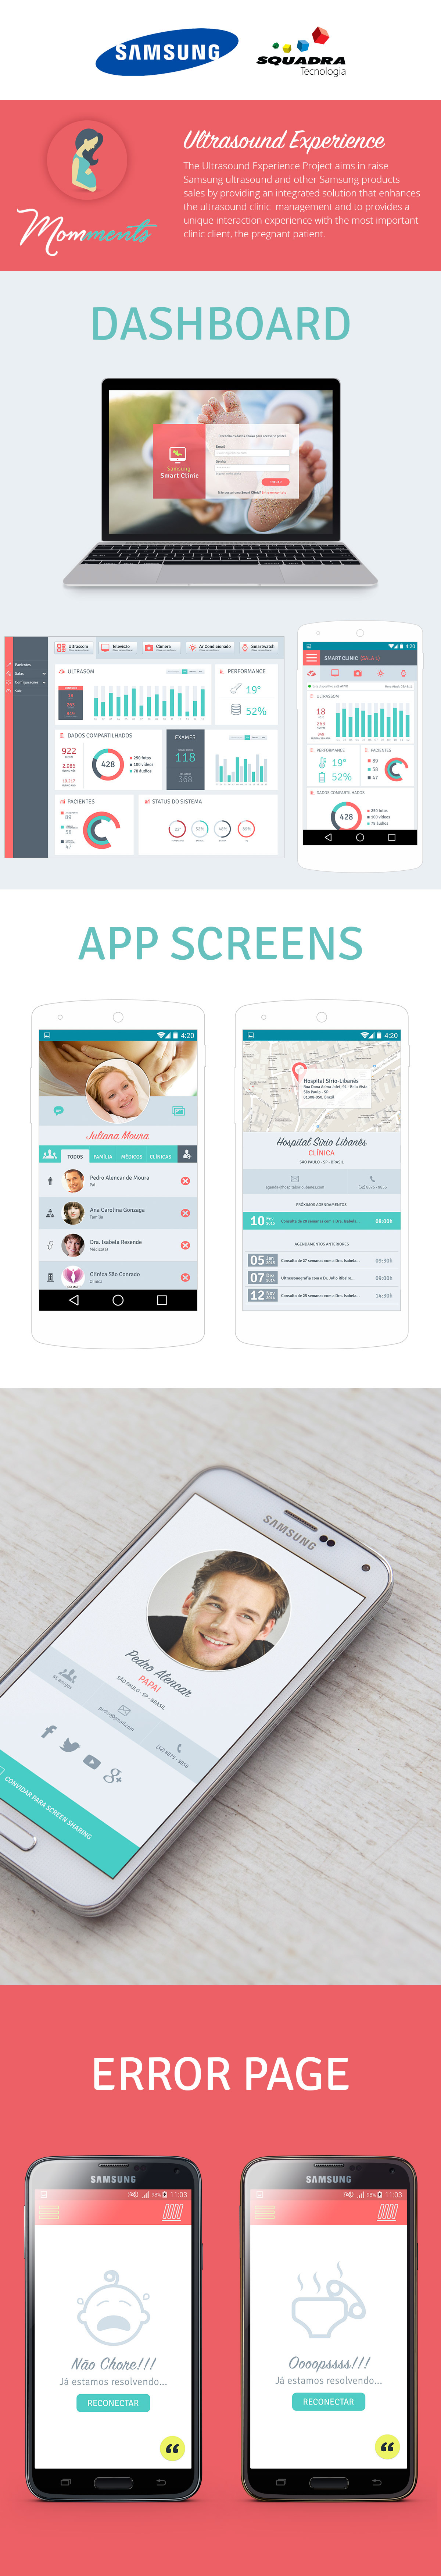 Samsung dashboard app pregnant baby mobile Ultrasound UI ux Experience